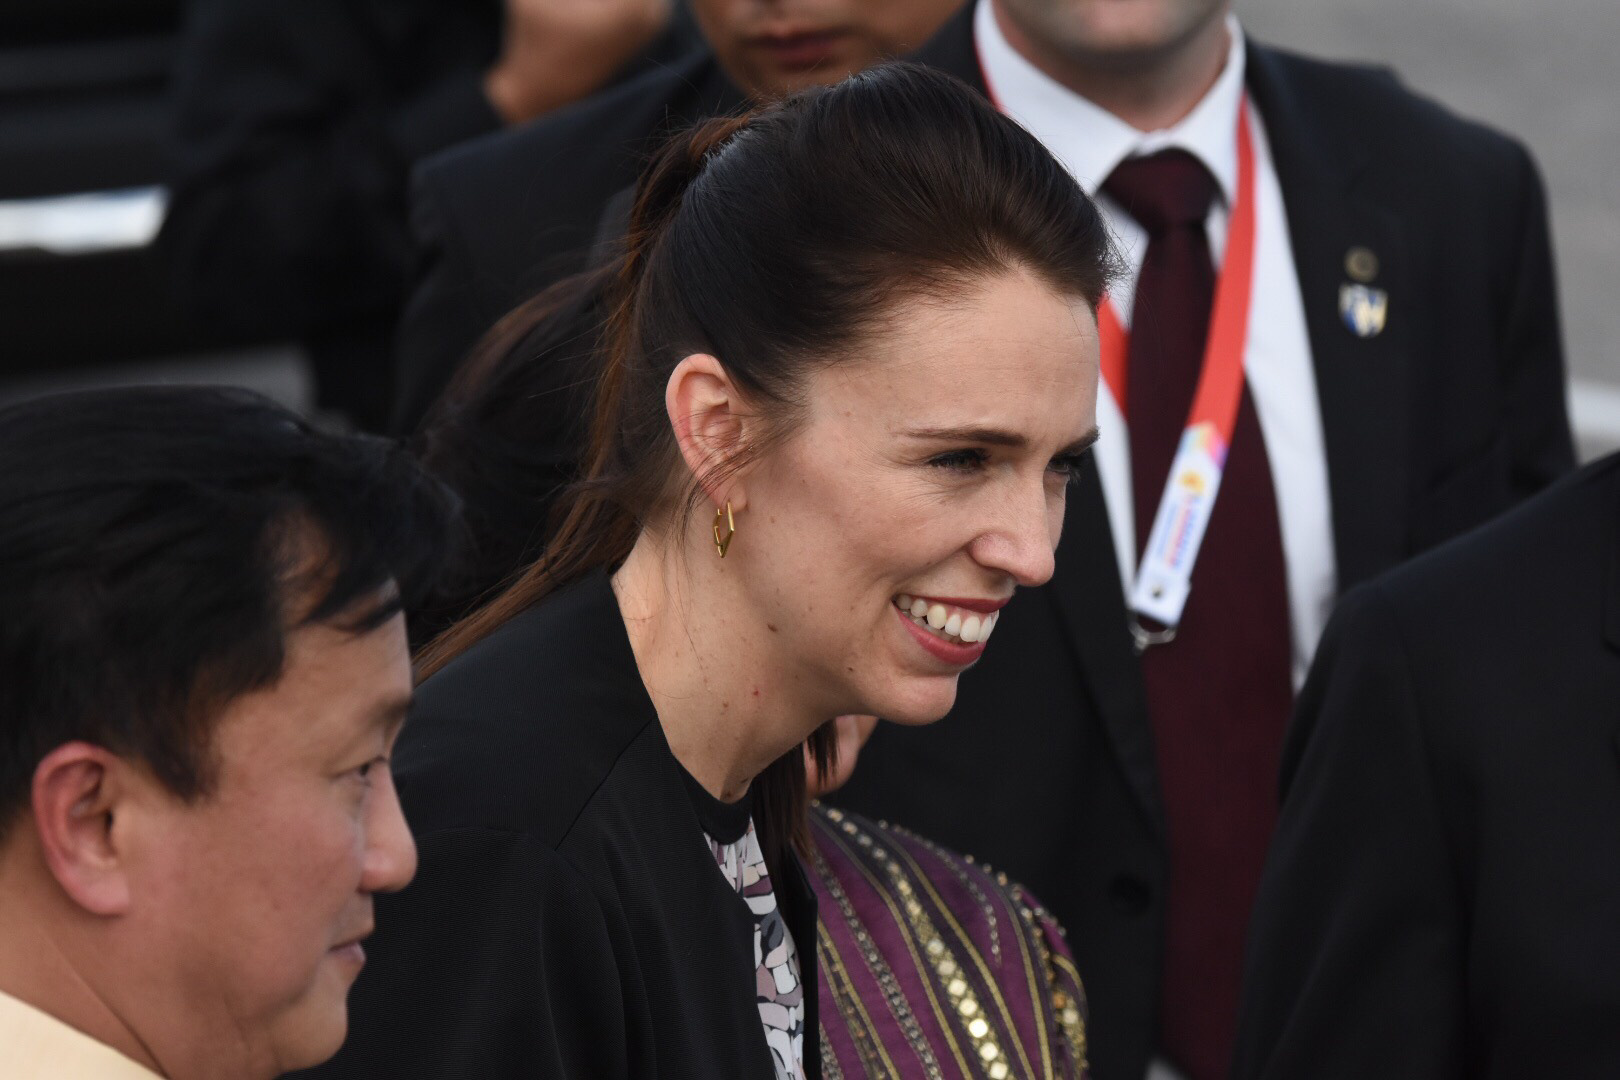 INVESTIGATION NEEDED. New Zealand Prime Minister Jacinda Ardern says the number of killings in the Philippines merits investigation.